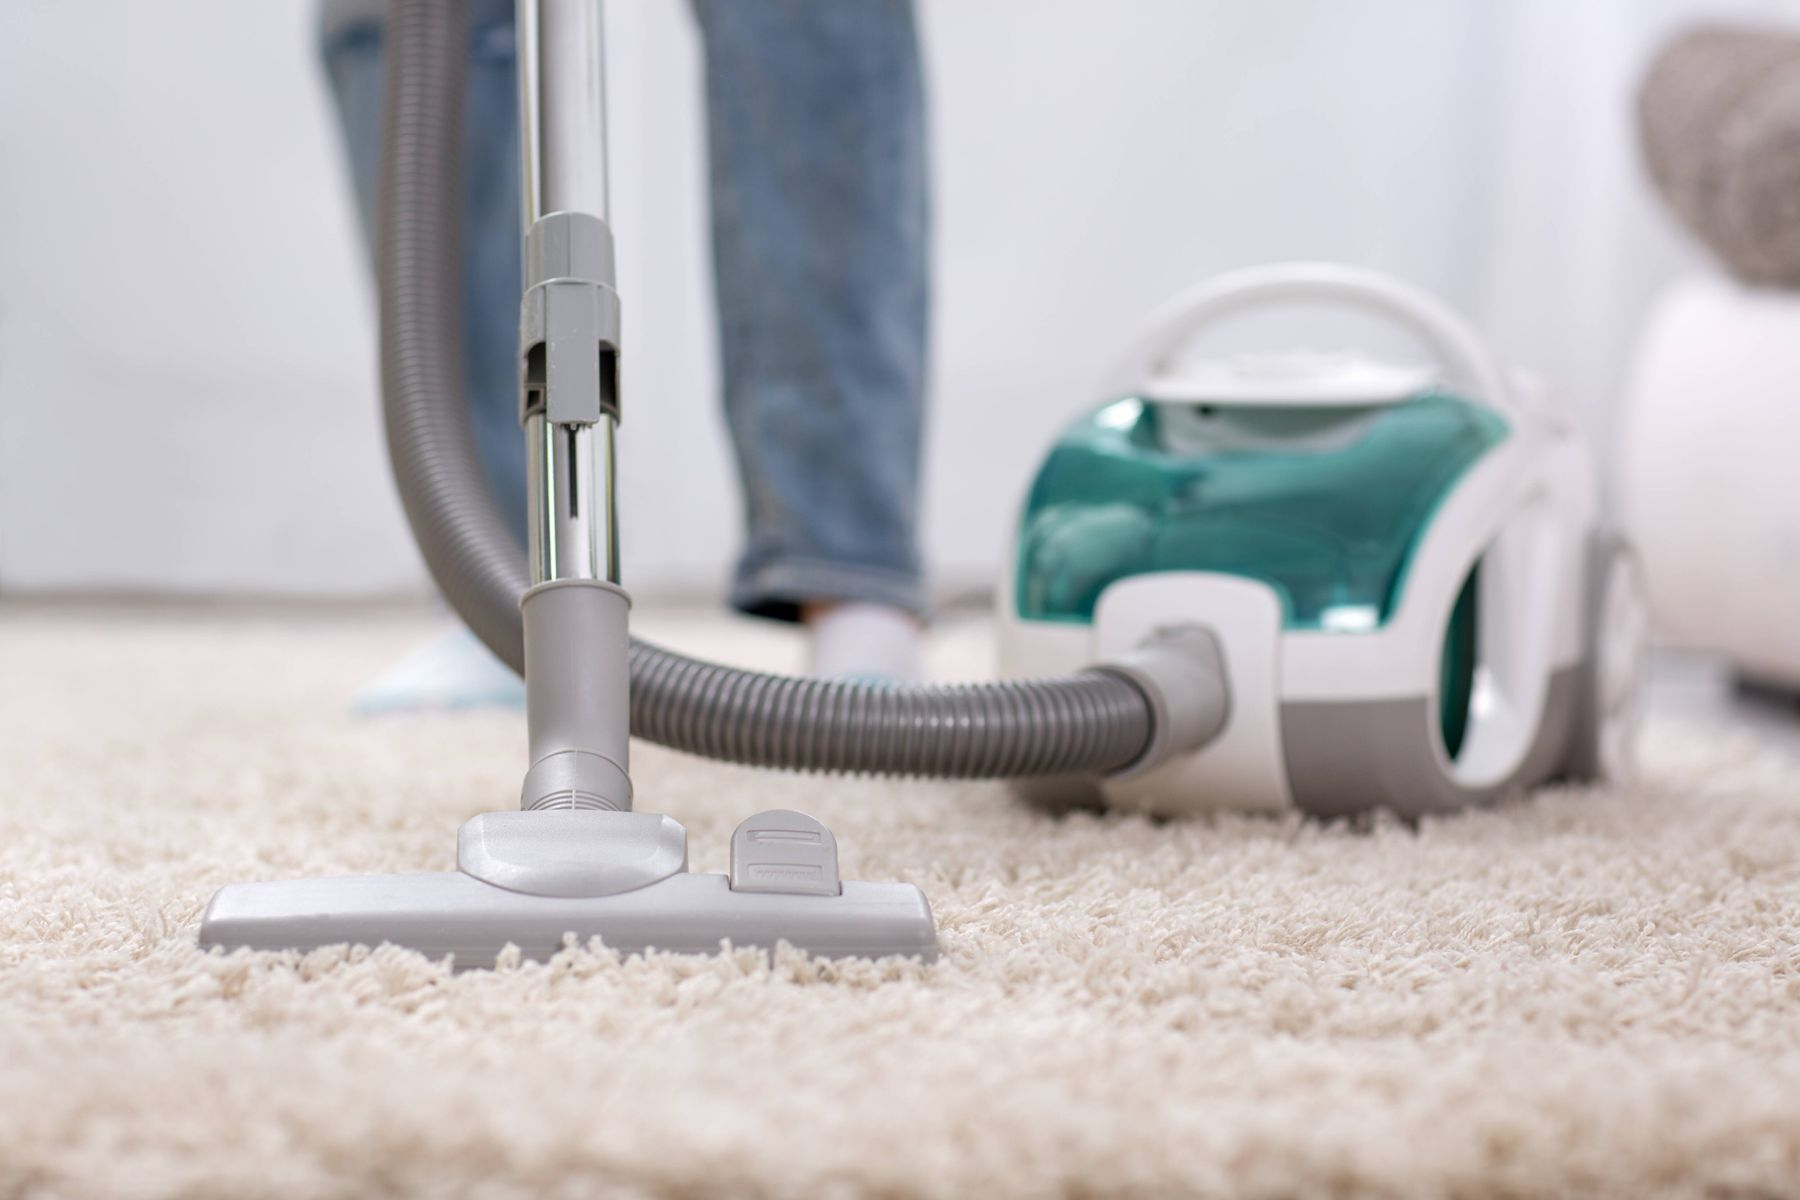 How to Maintain your Vacuum Cleaner | Cleanipedia